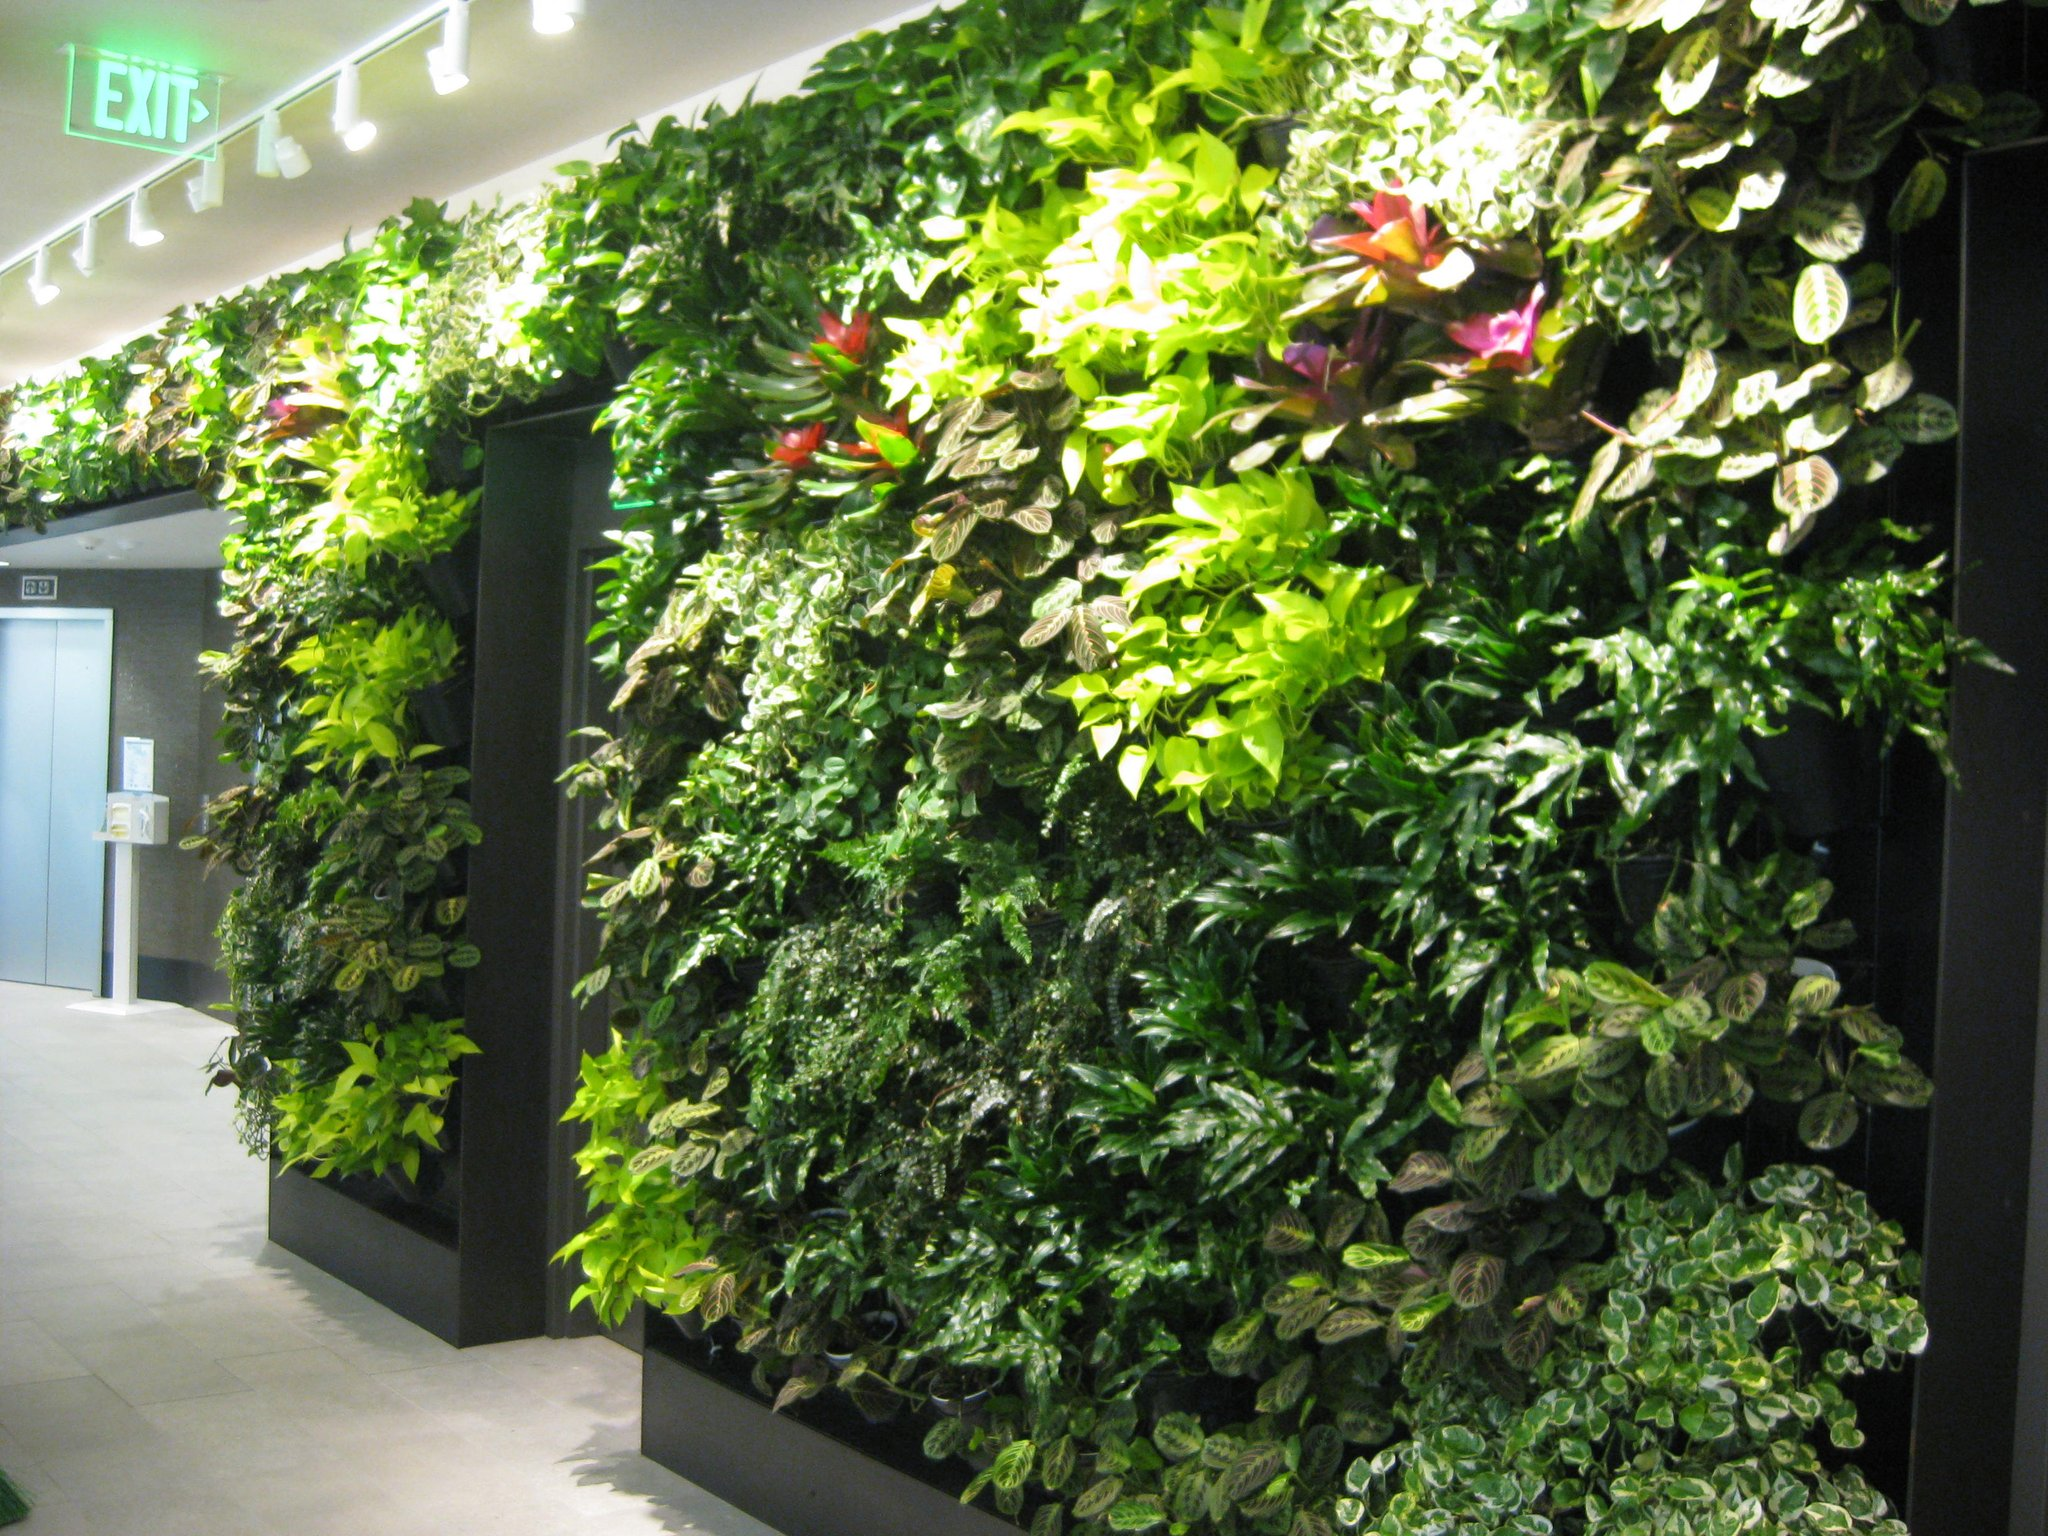 Thumbnail for 11.30.16 #landscapechat Green Walls